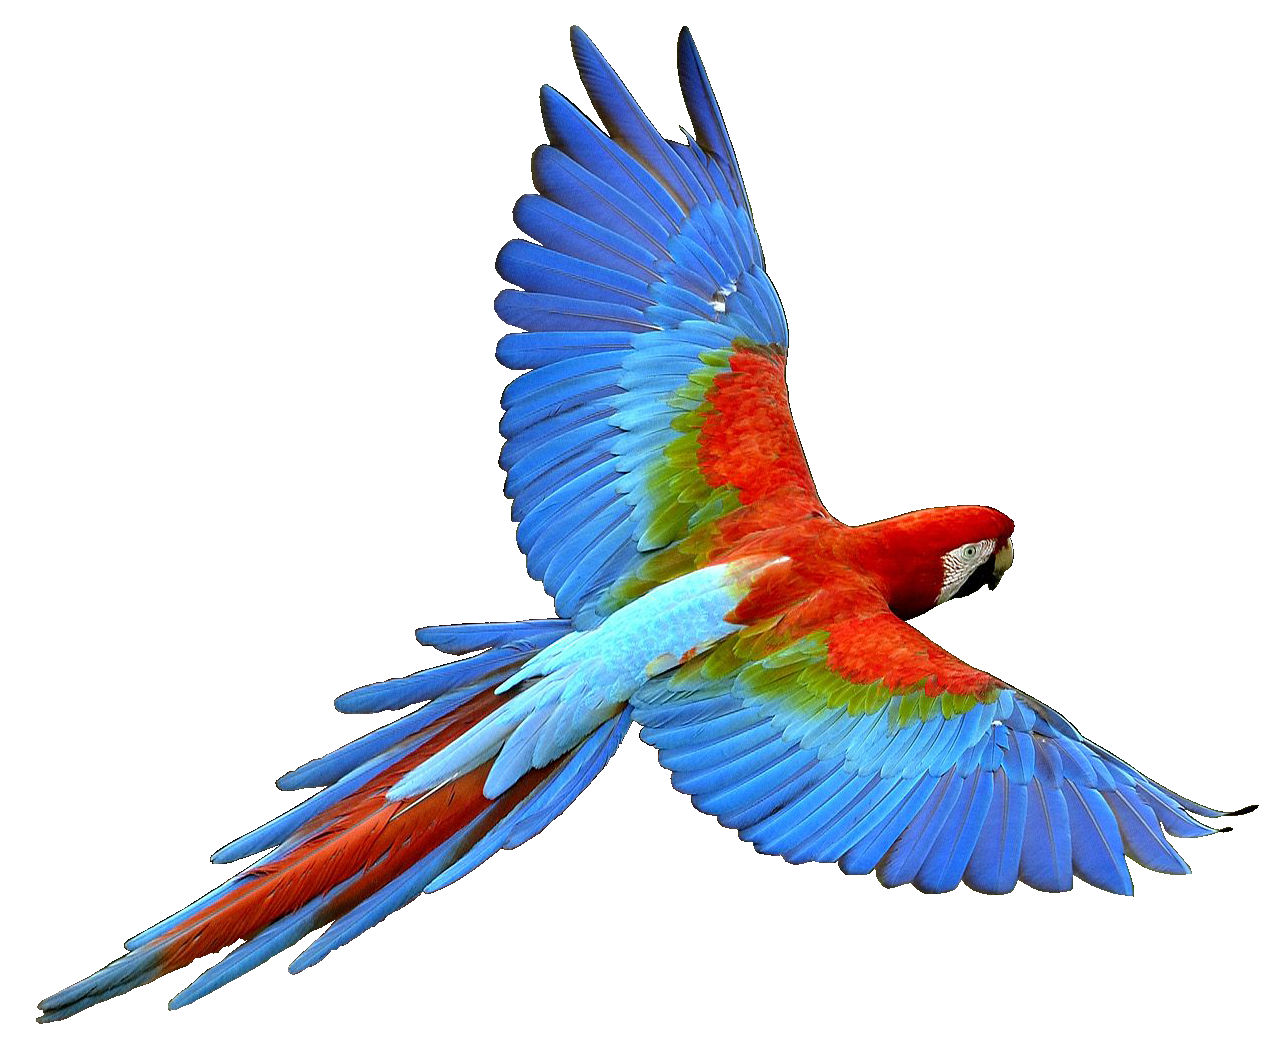 Parrot Pictures Kids Search